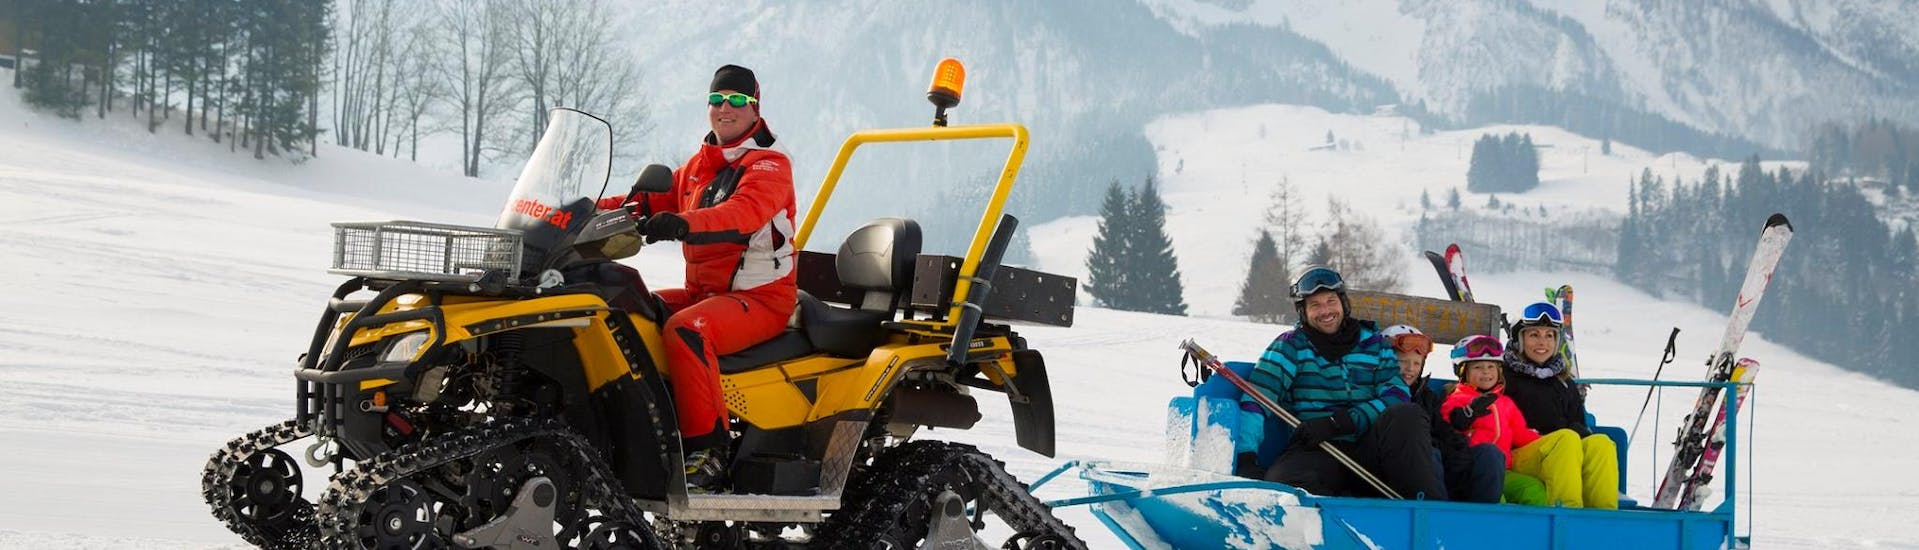 The Ski instructor of Skischule Zahmer Kaiser  in Kaiserwinkel drives around the participants from his skiing lessons with his snowmobile.